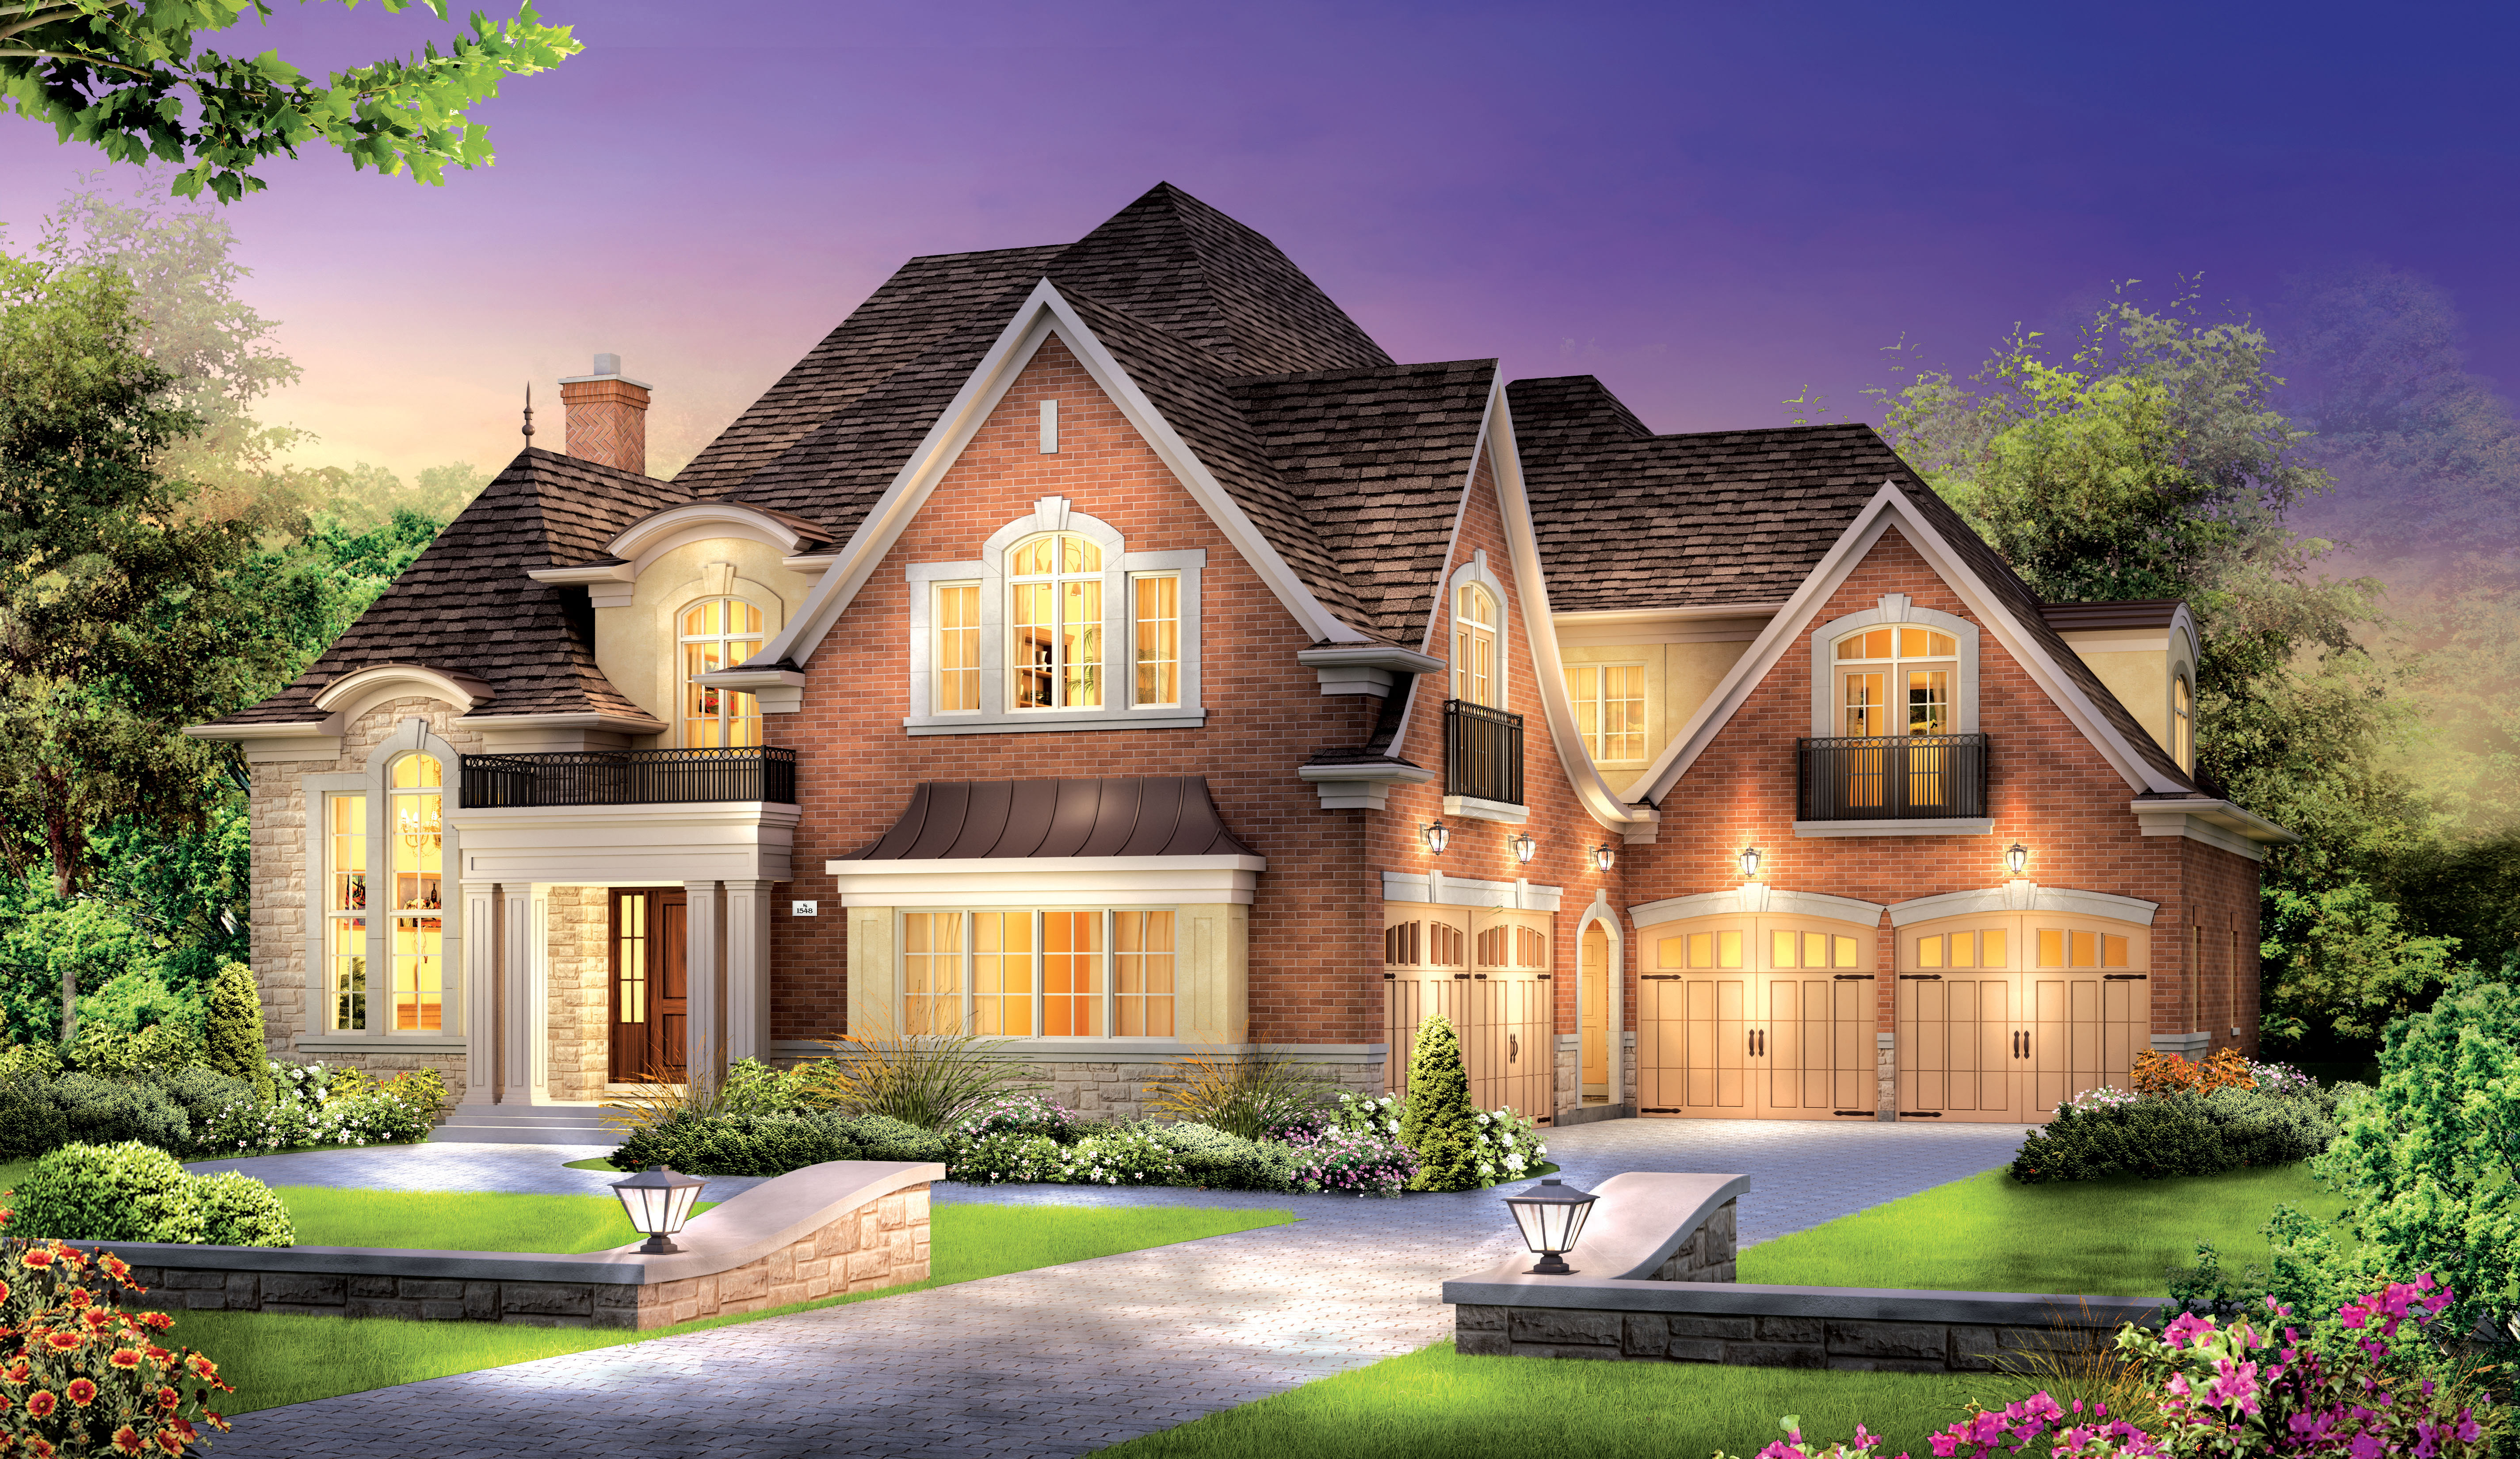 House 5k retina ultra hd wallpaper and background for Wallpaper with houses on